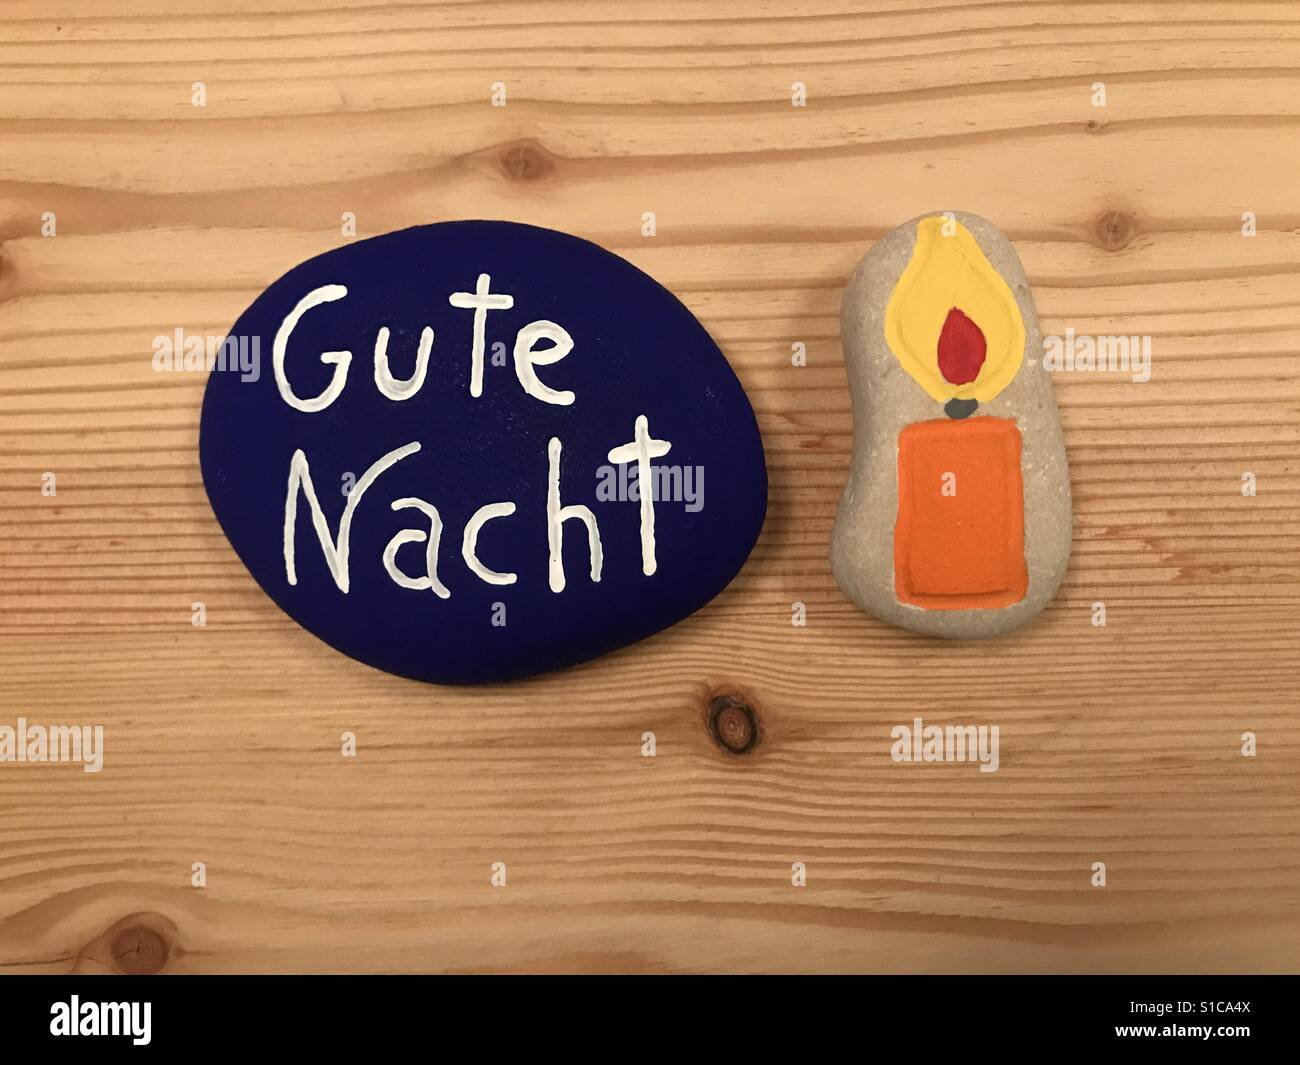 Gute Nacht, german good night with colored stones over wooden board - Stock Image